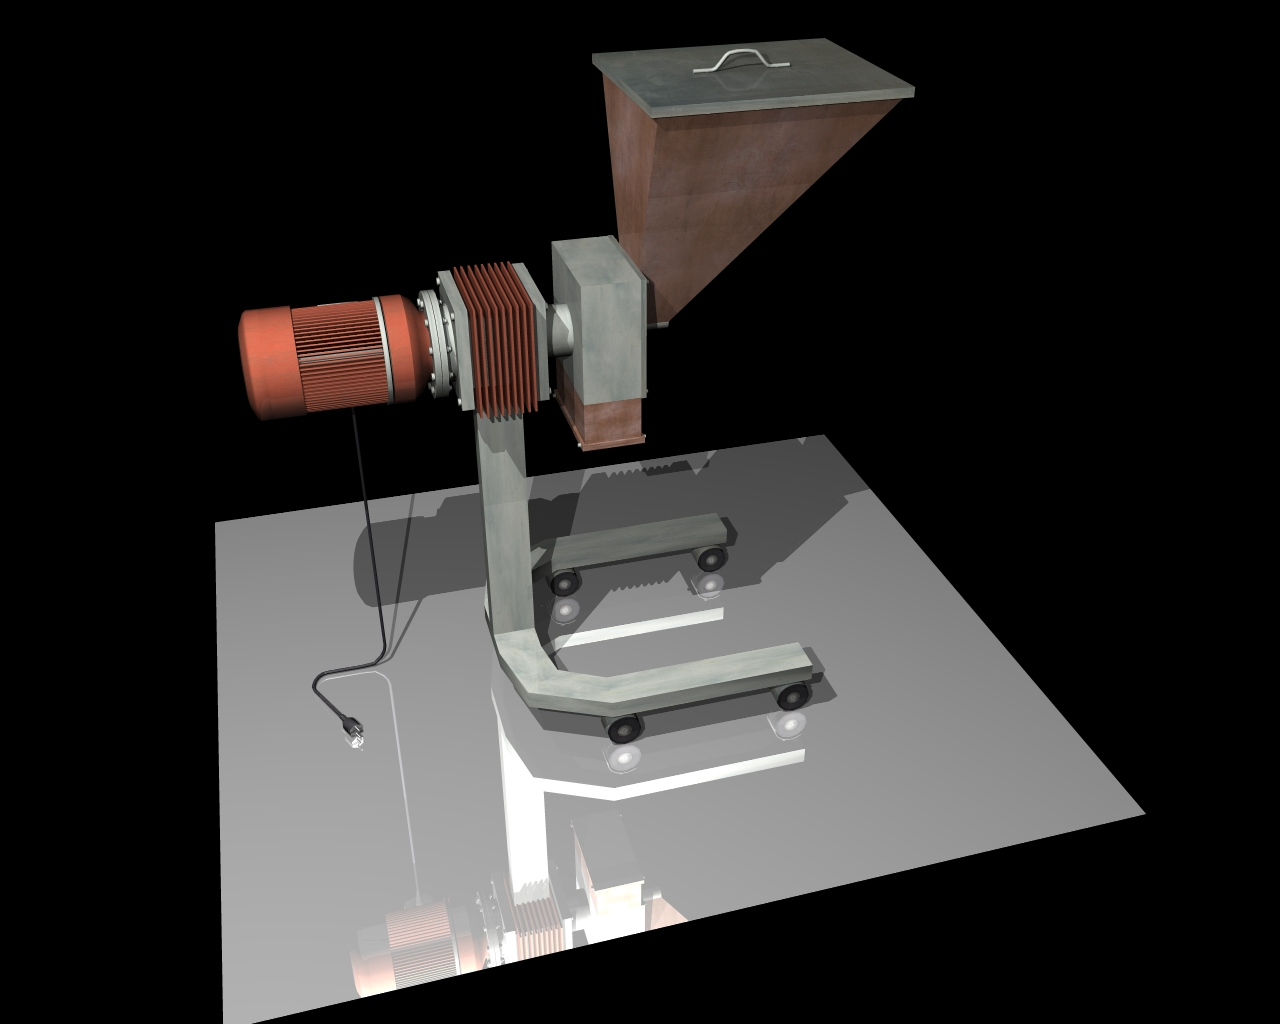 grind machine 3d model 3ds 164261